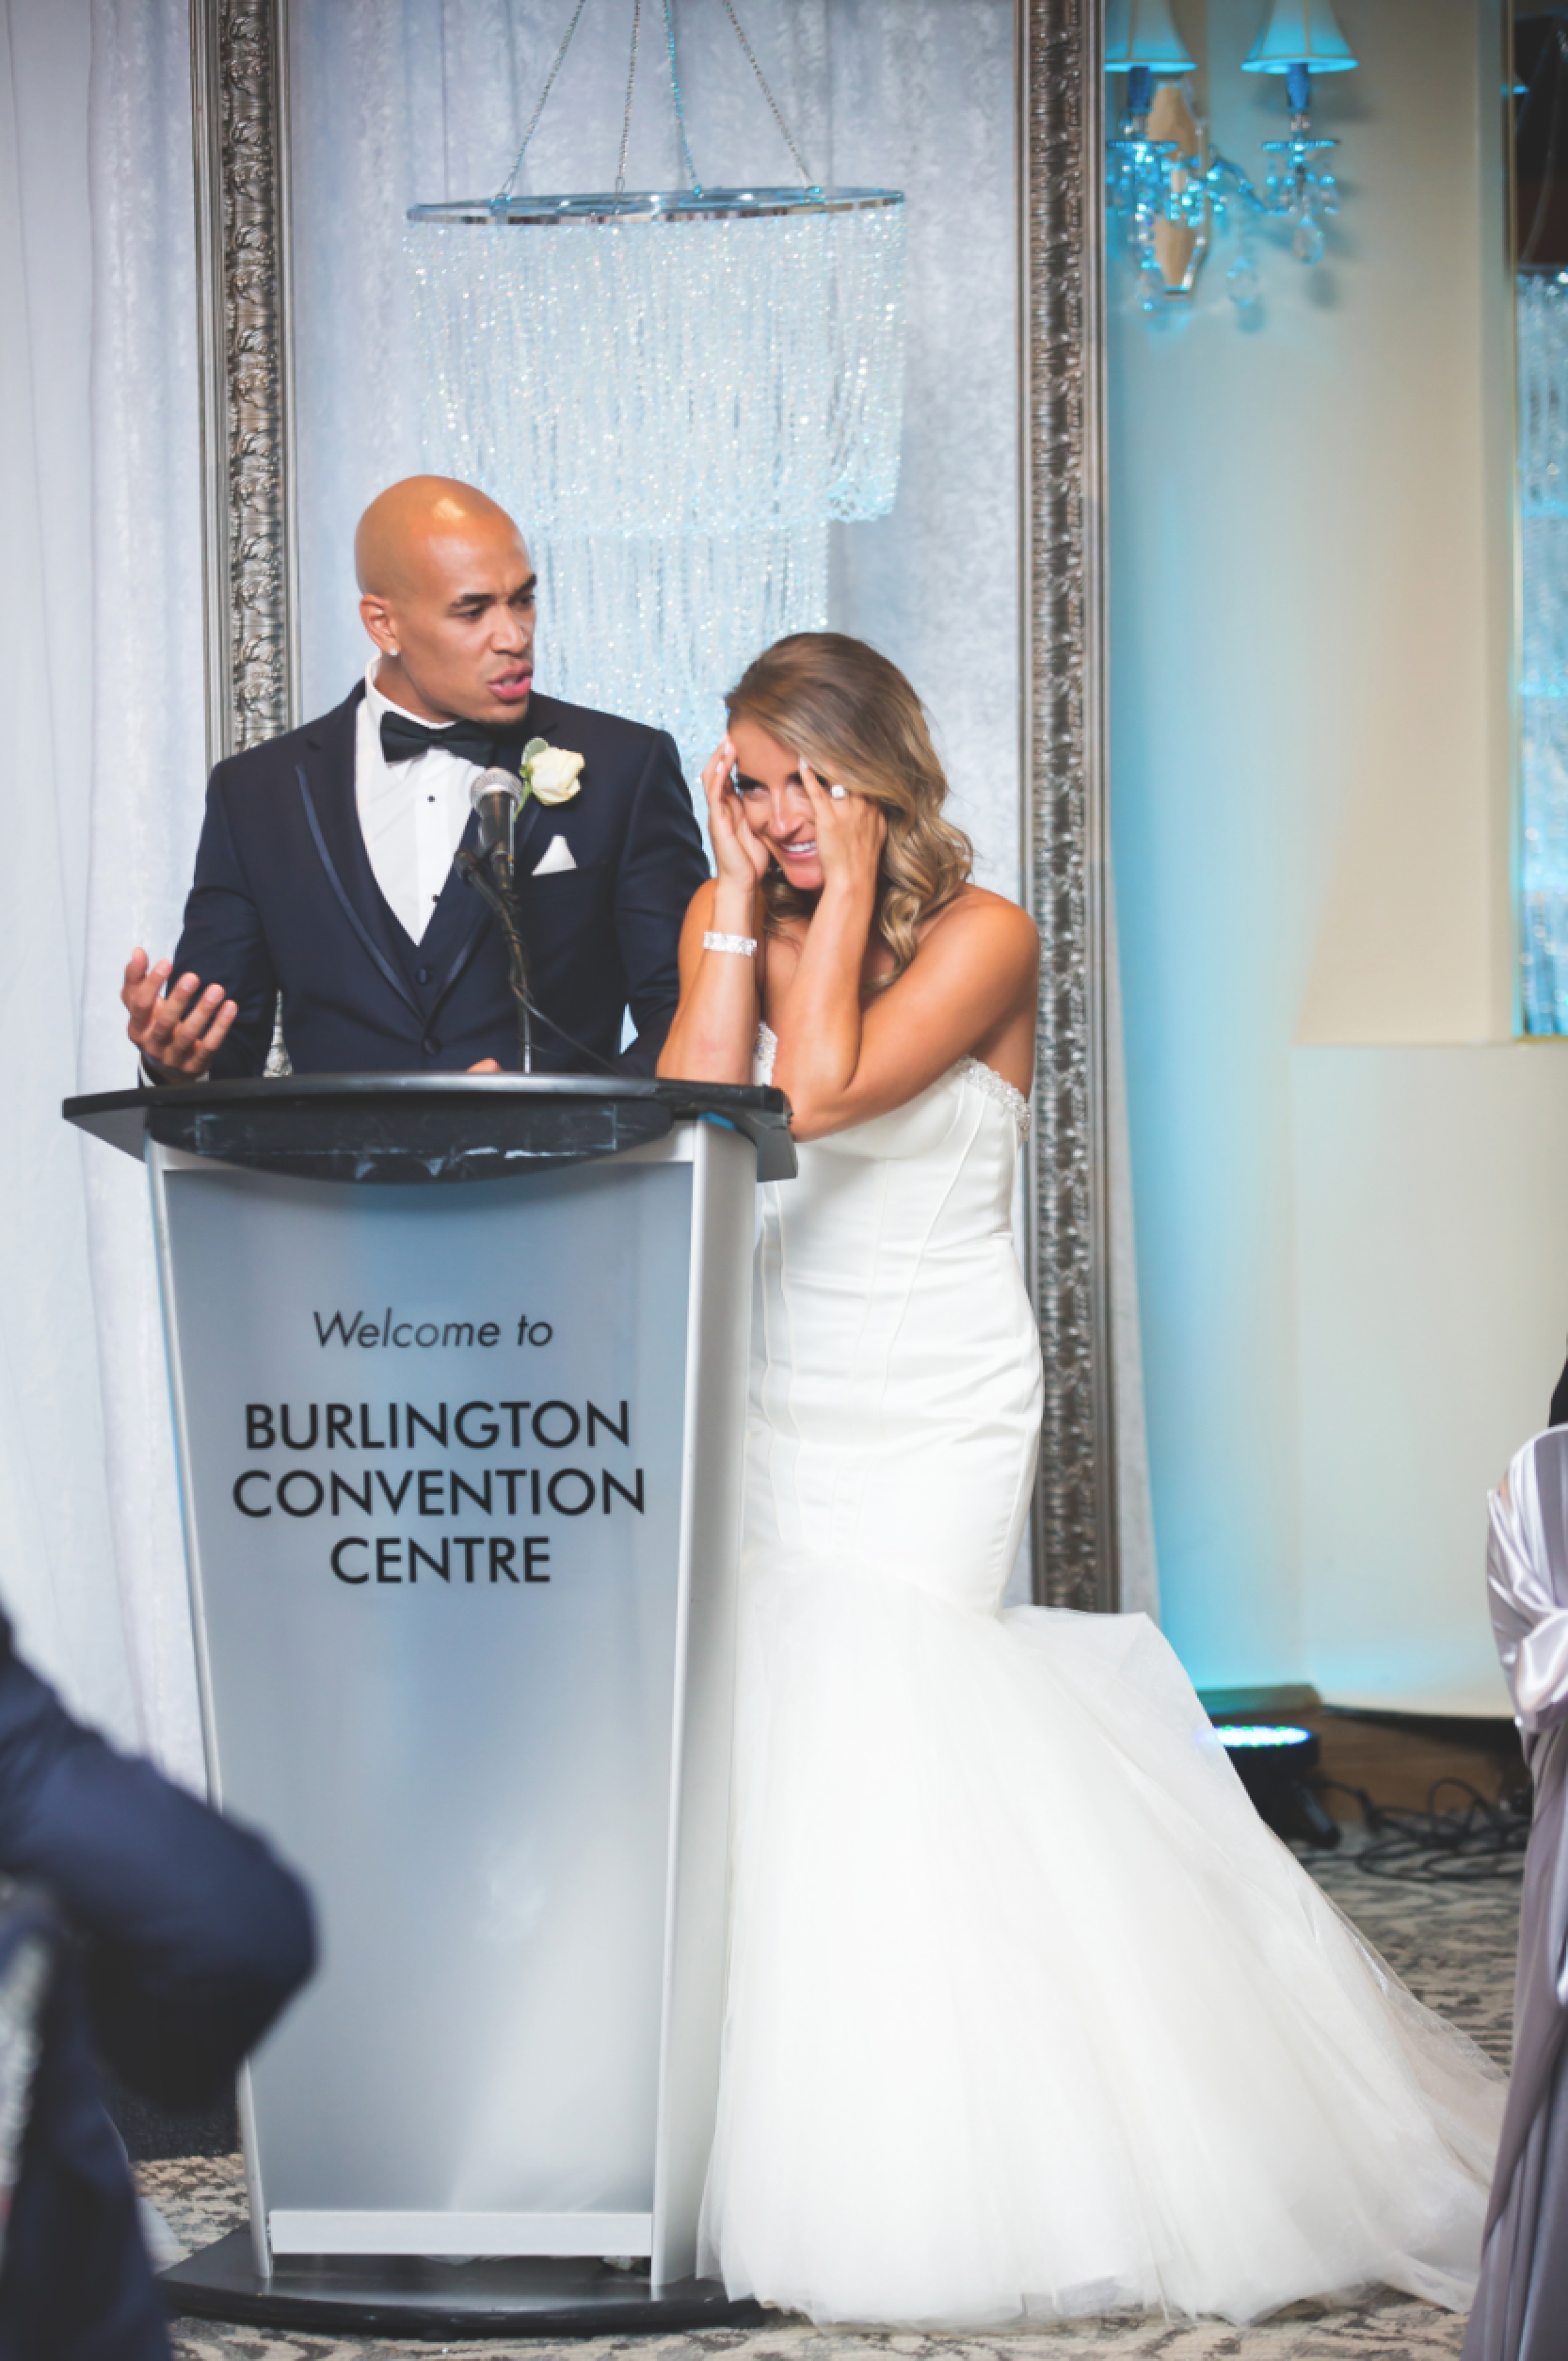 Wedding-Burlington-Convention-Center-Burlington-Oakville-Toronto-Hamilton-Niagara-Wedding-Photographer-Photography-Moments-by-Lauren-Photo-Image-67.png